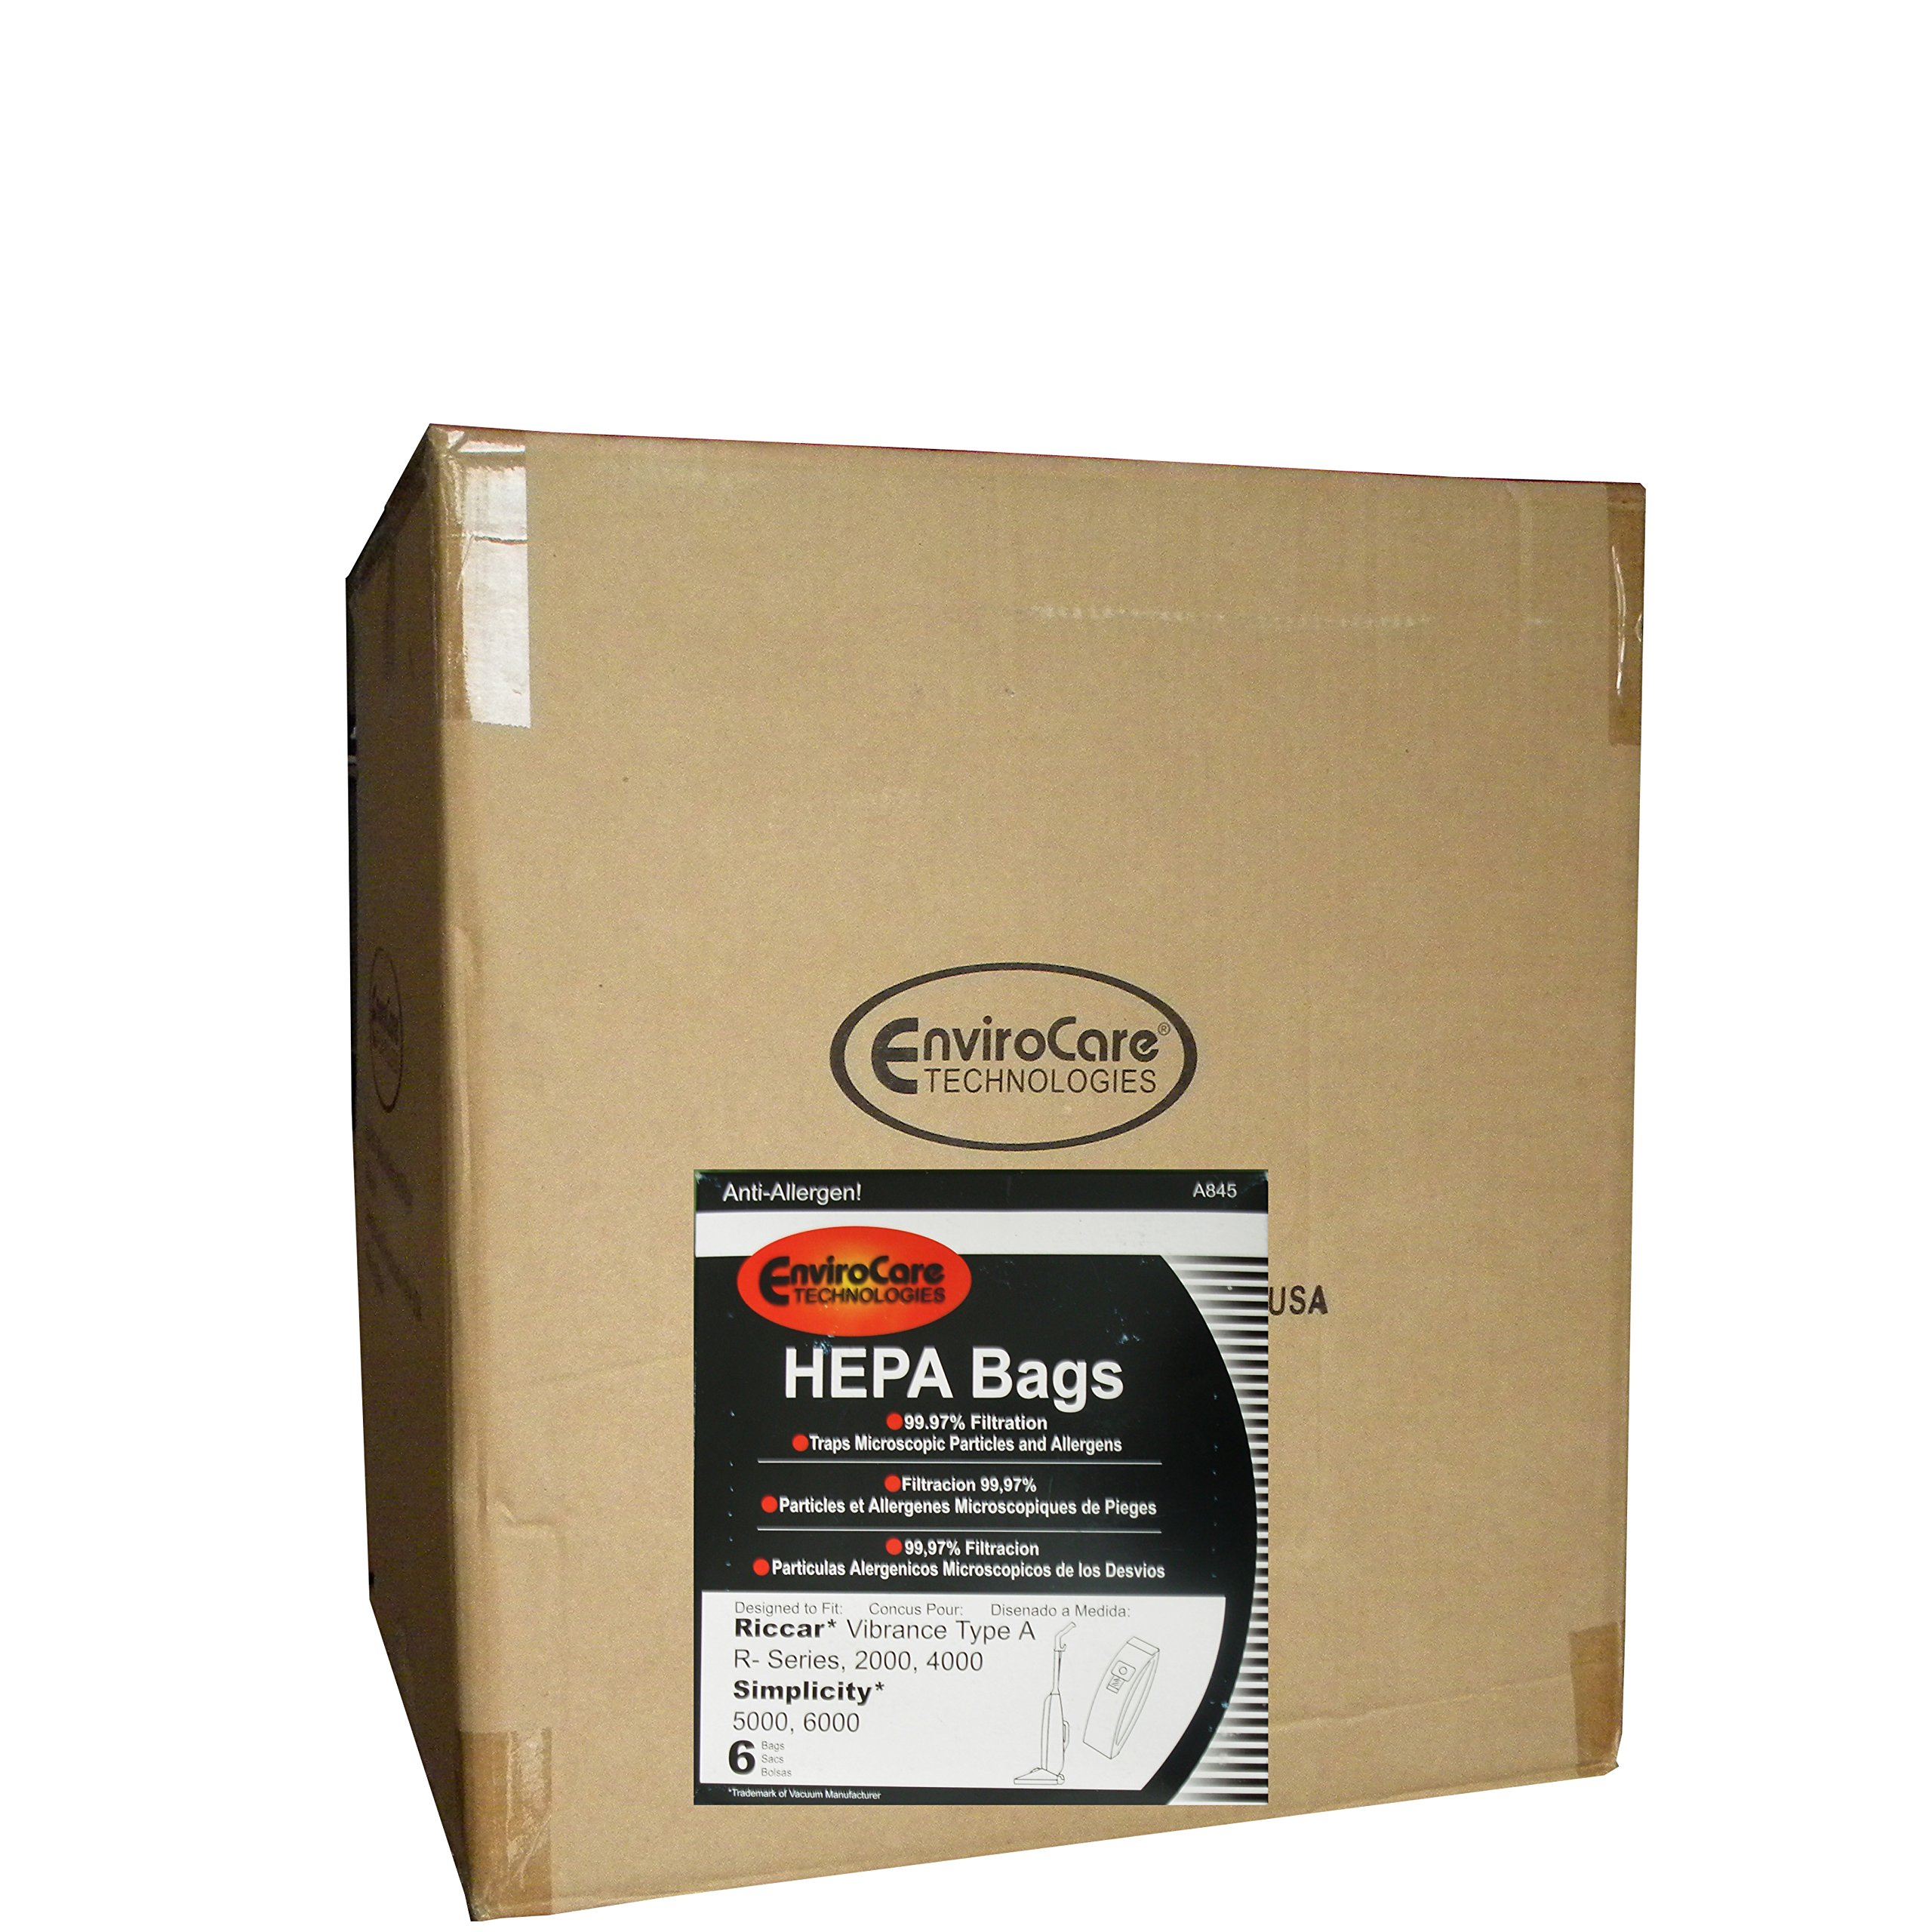 150 Riccar Vibrance Simplicity 5000, 6000 Type a Hepa Bags, Commercial, Canister Vacuum Cleaners, S6-3, S6-12, C13-6, C13H-6, 52-2402-07, R500, R600, R700, R800 R800C, R100, R200, R300, R300C 2000, 4000, 6100, 6370, 6400, 6550, 6570